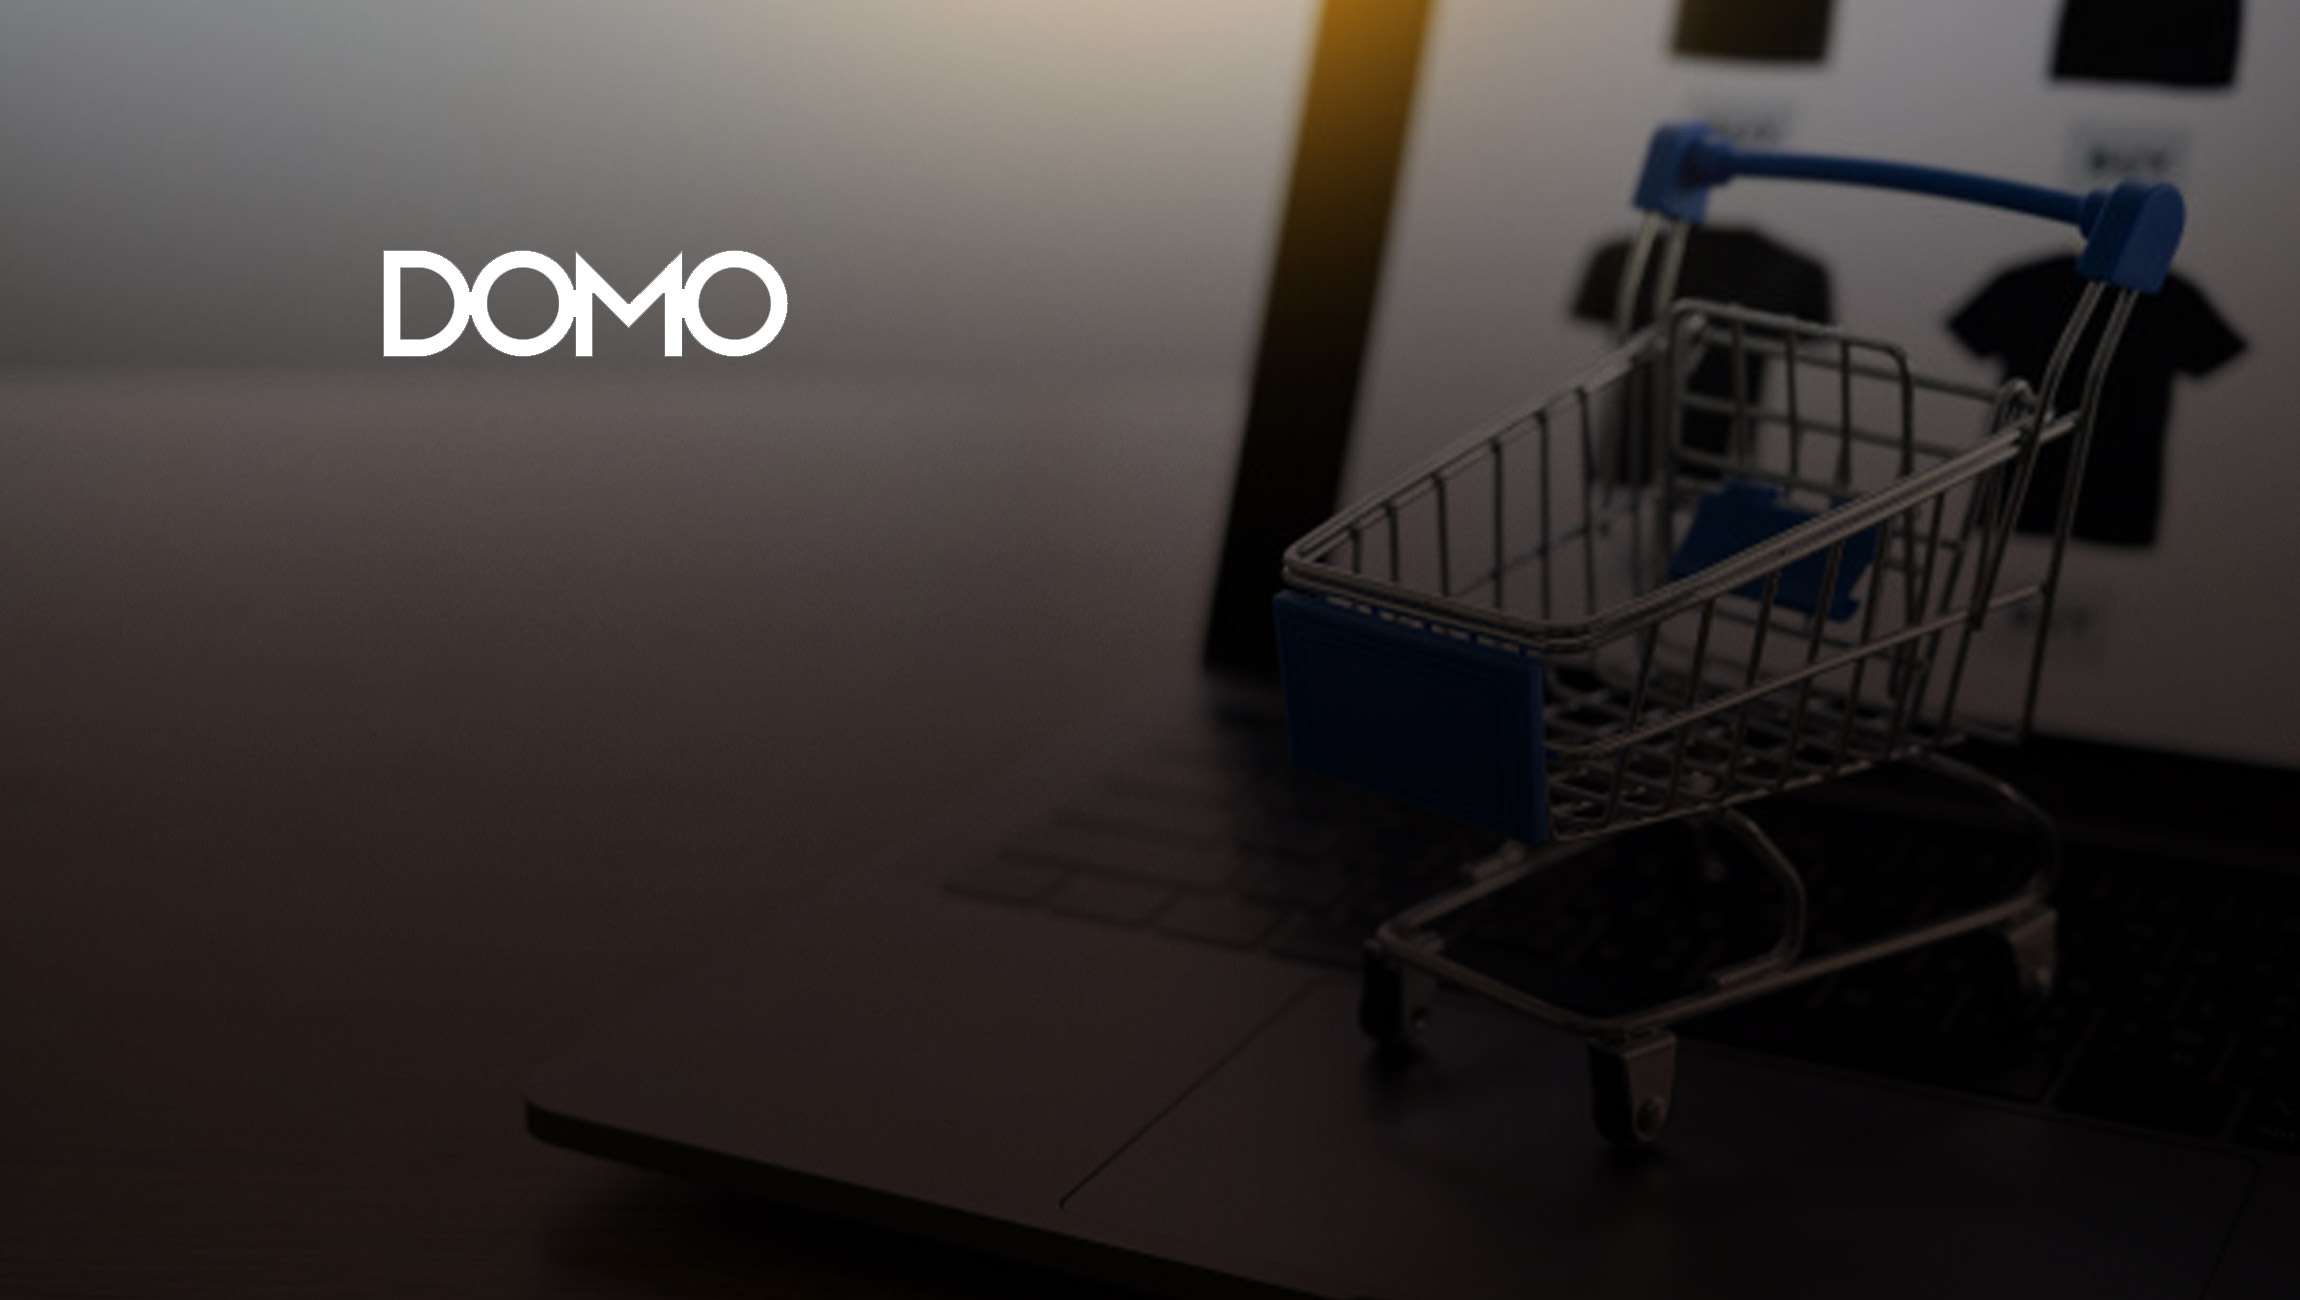 Domo Bolsters Support for Retail Industry by Achieving AWS Retail Competency Status